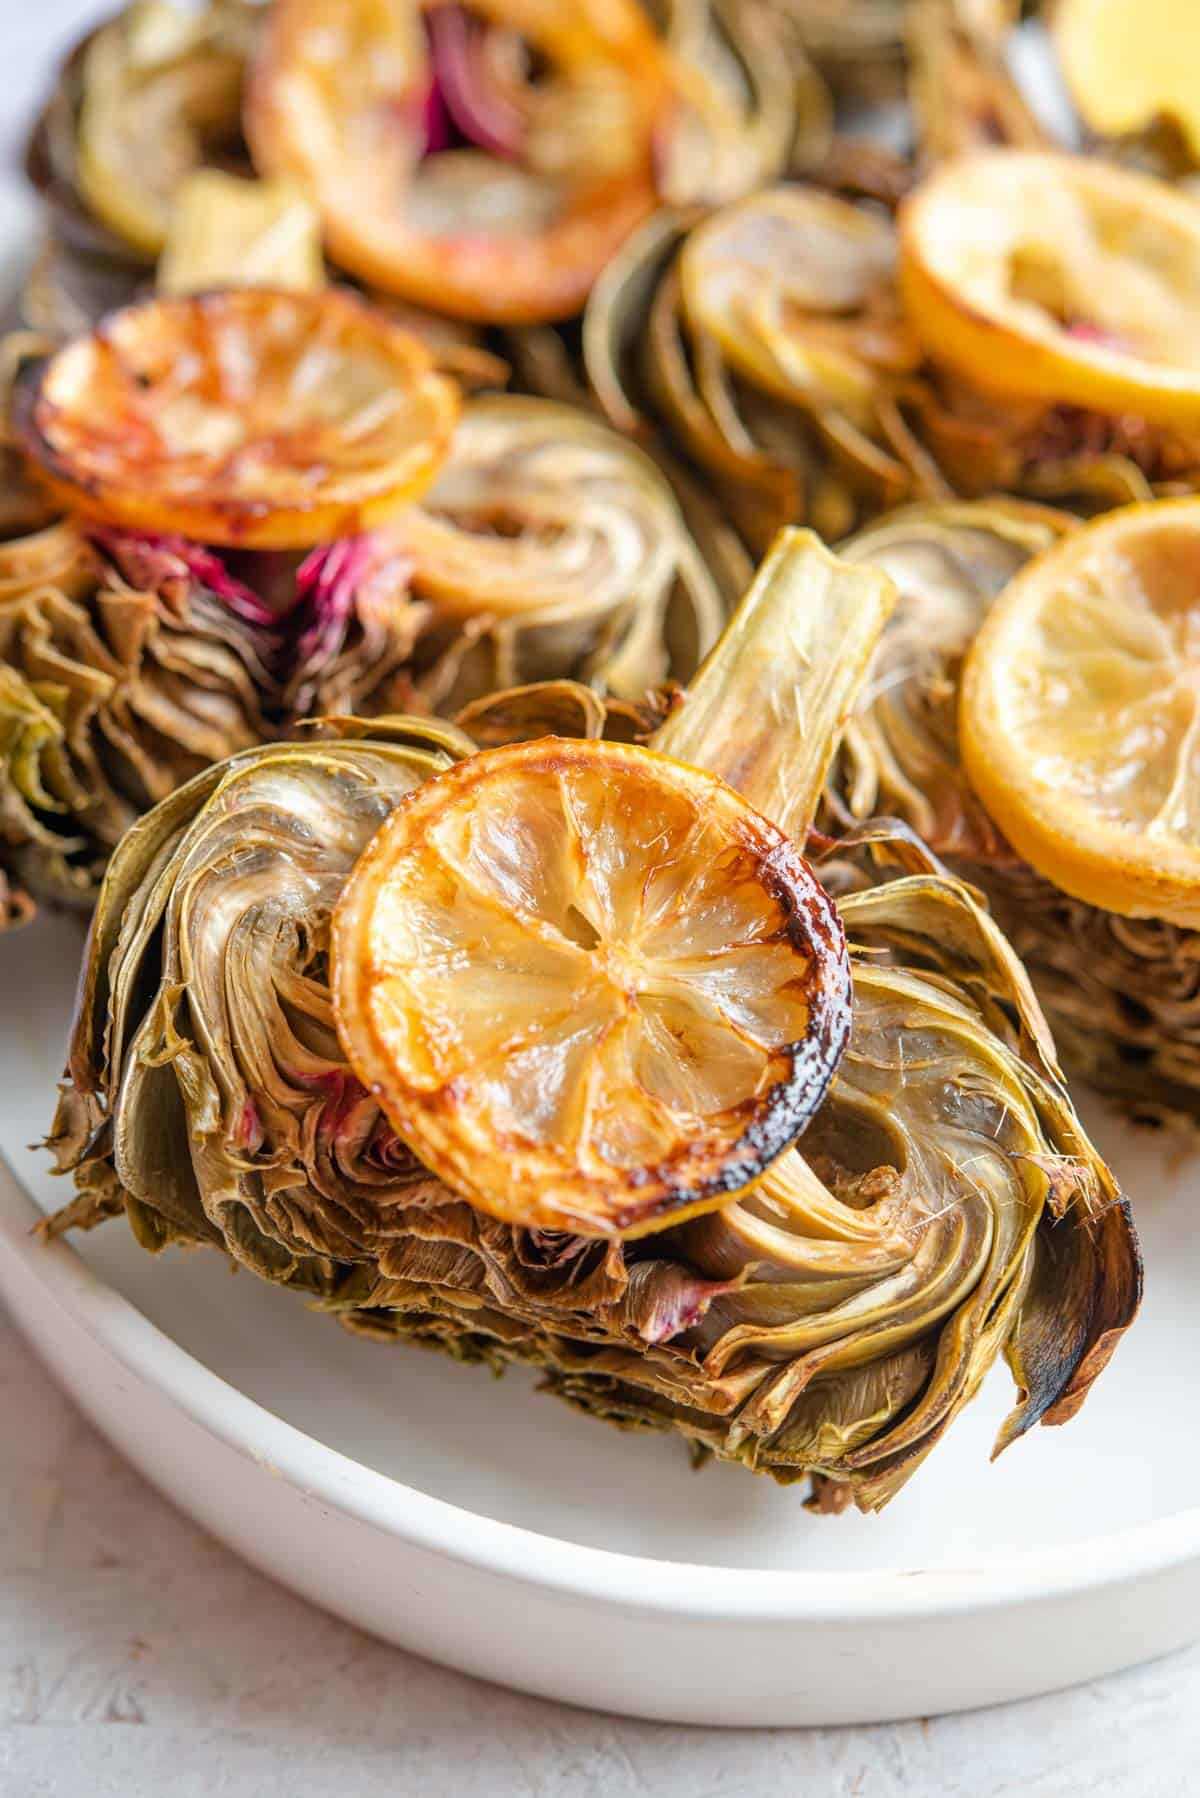 A close up of a roasted artichoke on a plate